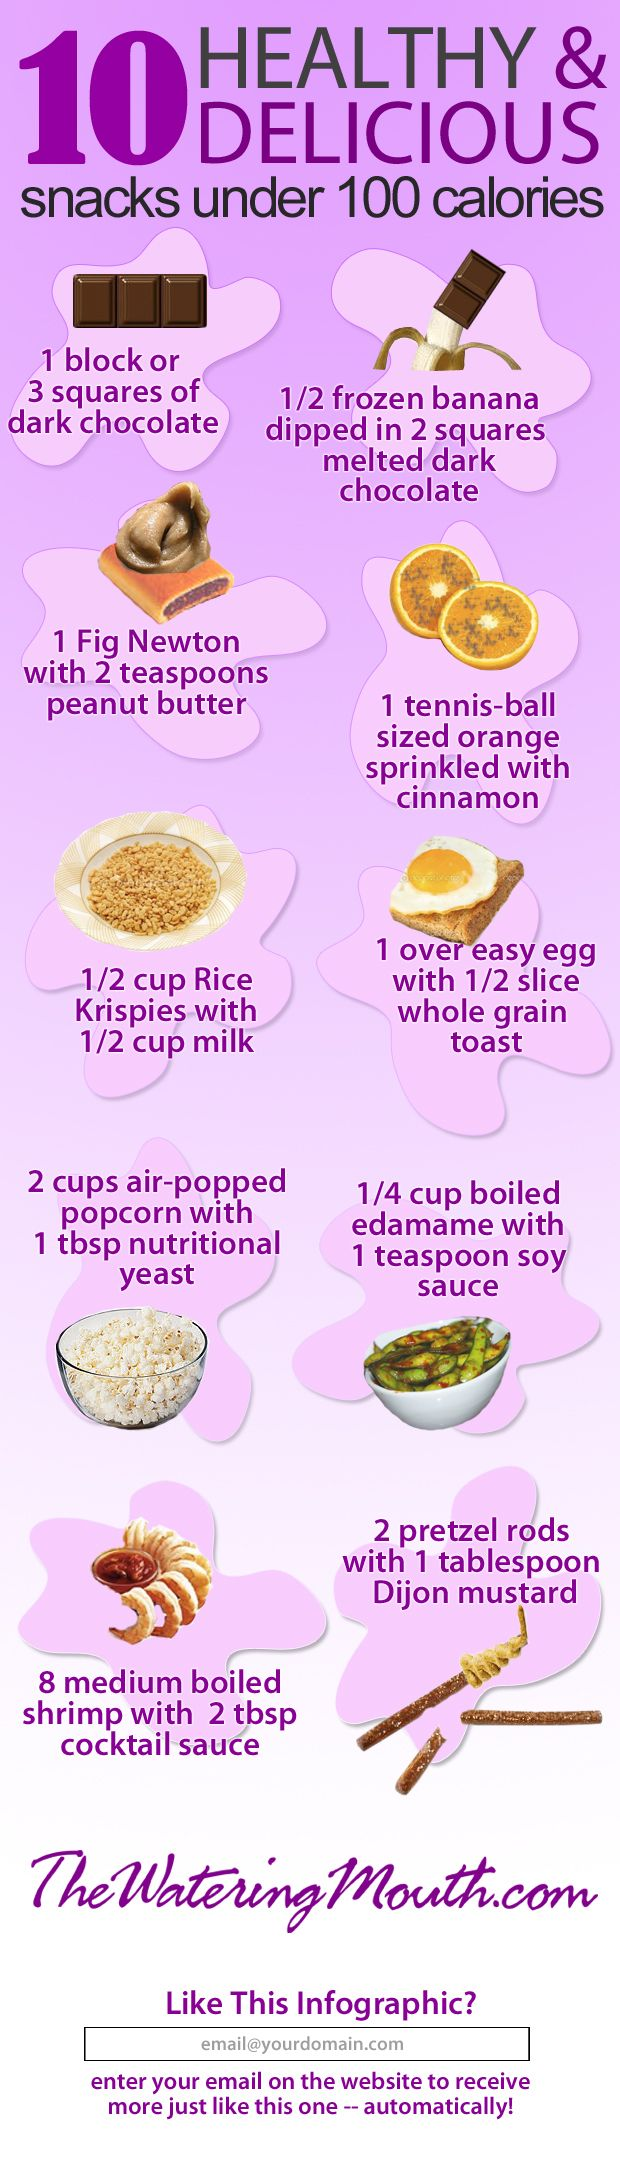 10 Healthy & Delicious Snacks Under 100 Calories! #infographic  http://thewateringmouth.com/10-healthy-snacks-under-100-calories-infographic/